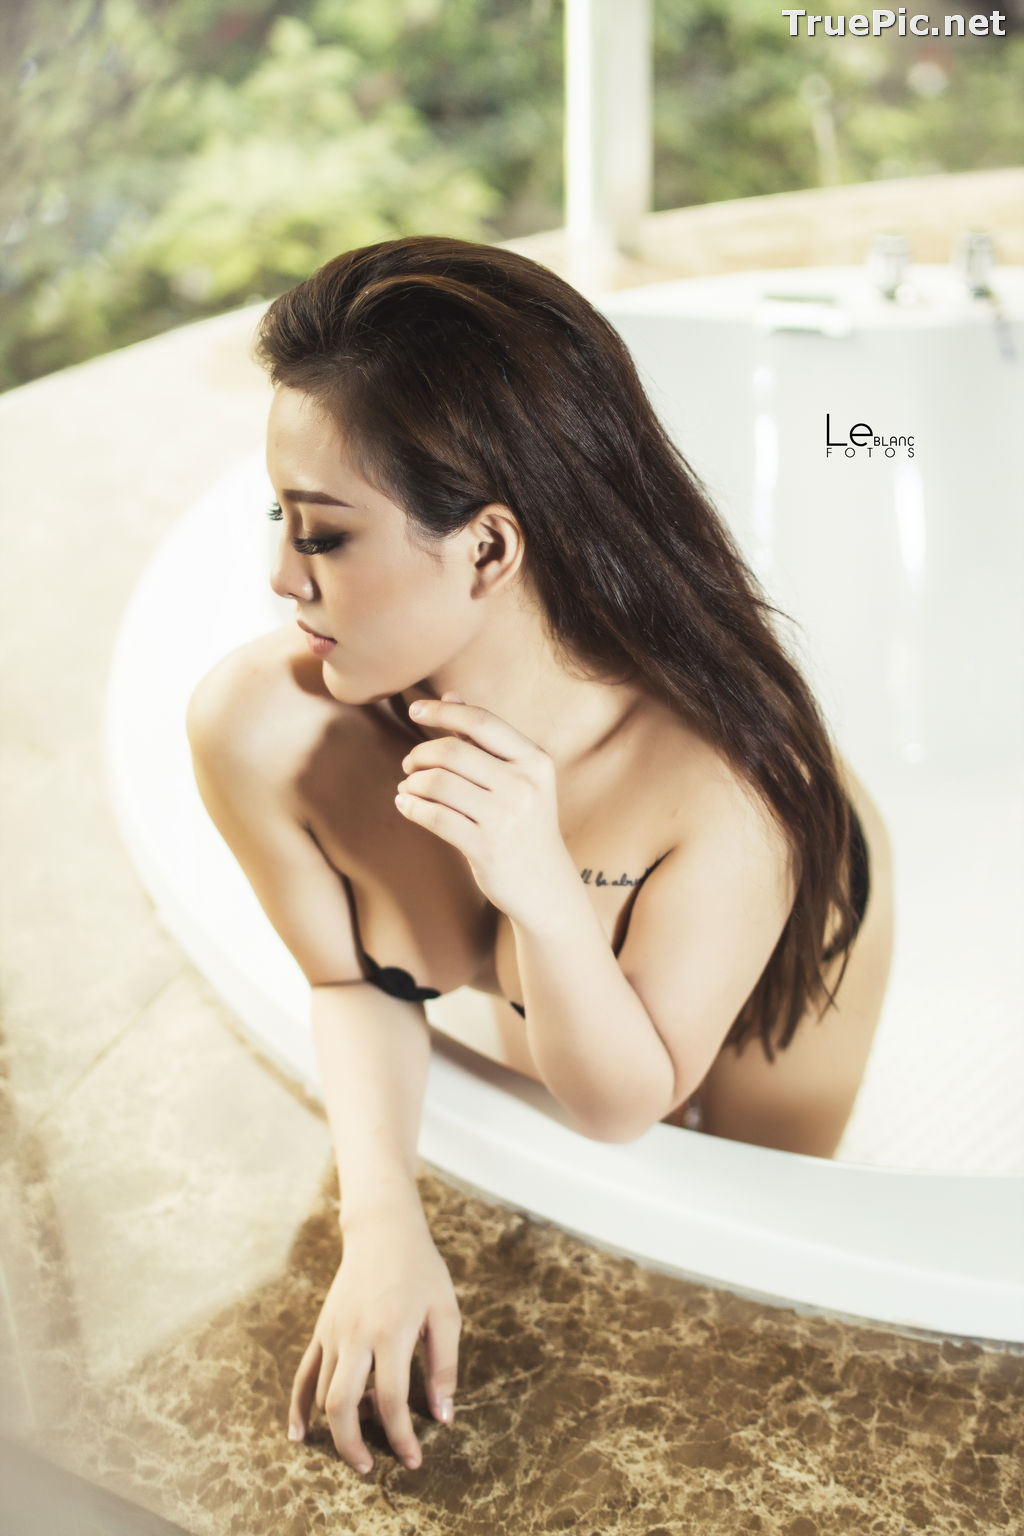 Image Vietnamese Beauties With Lingerie and Bikini – Photo by Le Blanc Studio #14 - TruePic.net - Picture-8